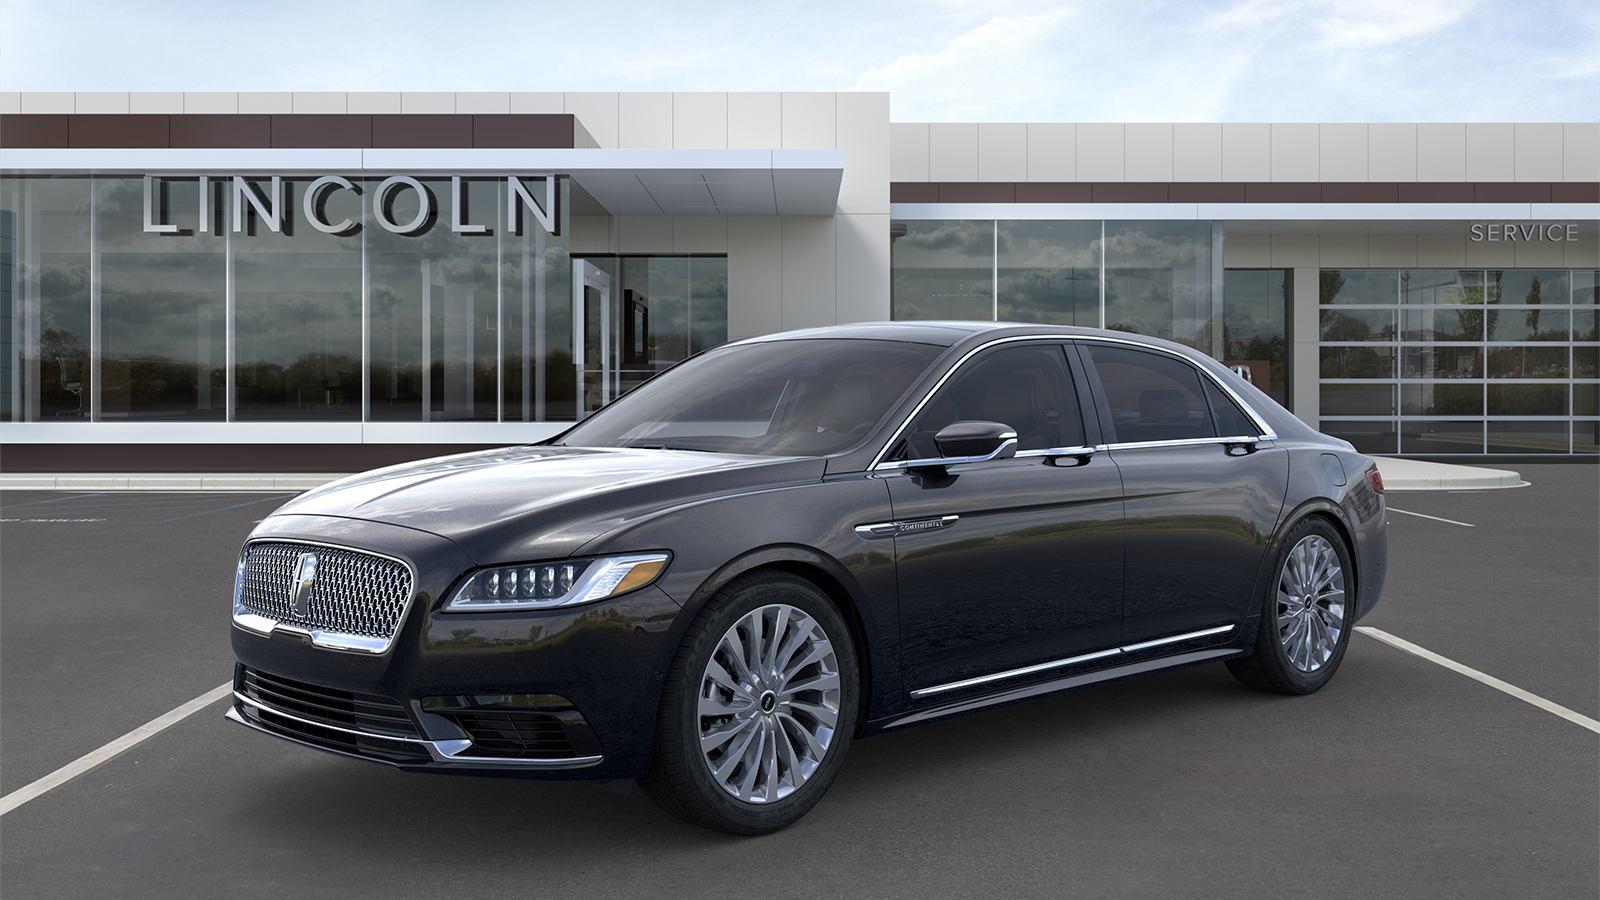 Lincoln_Continental_Default_Ext_1600x900